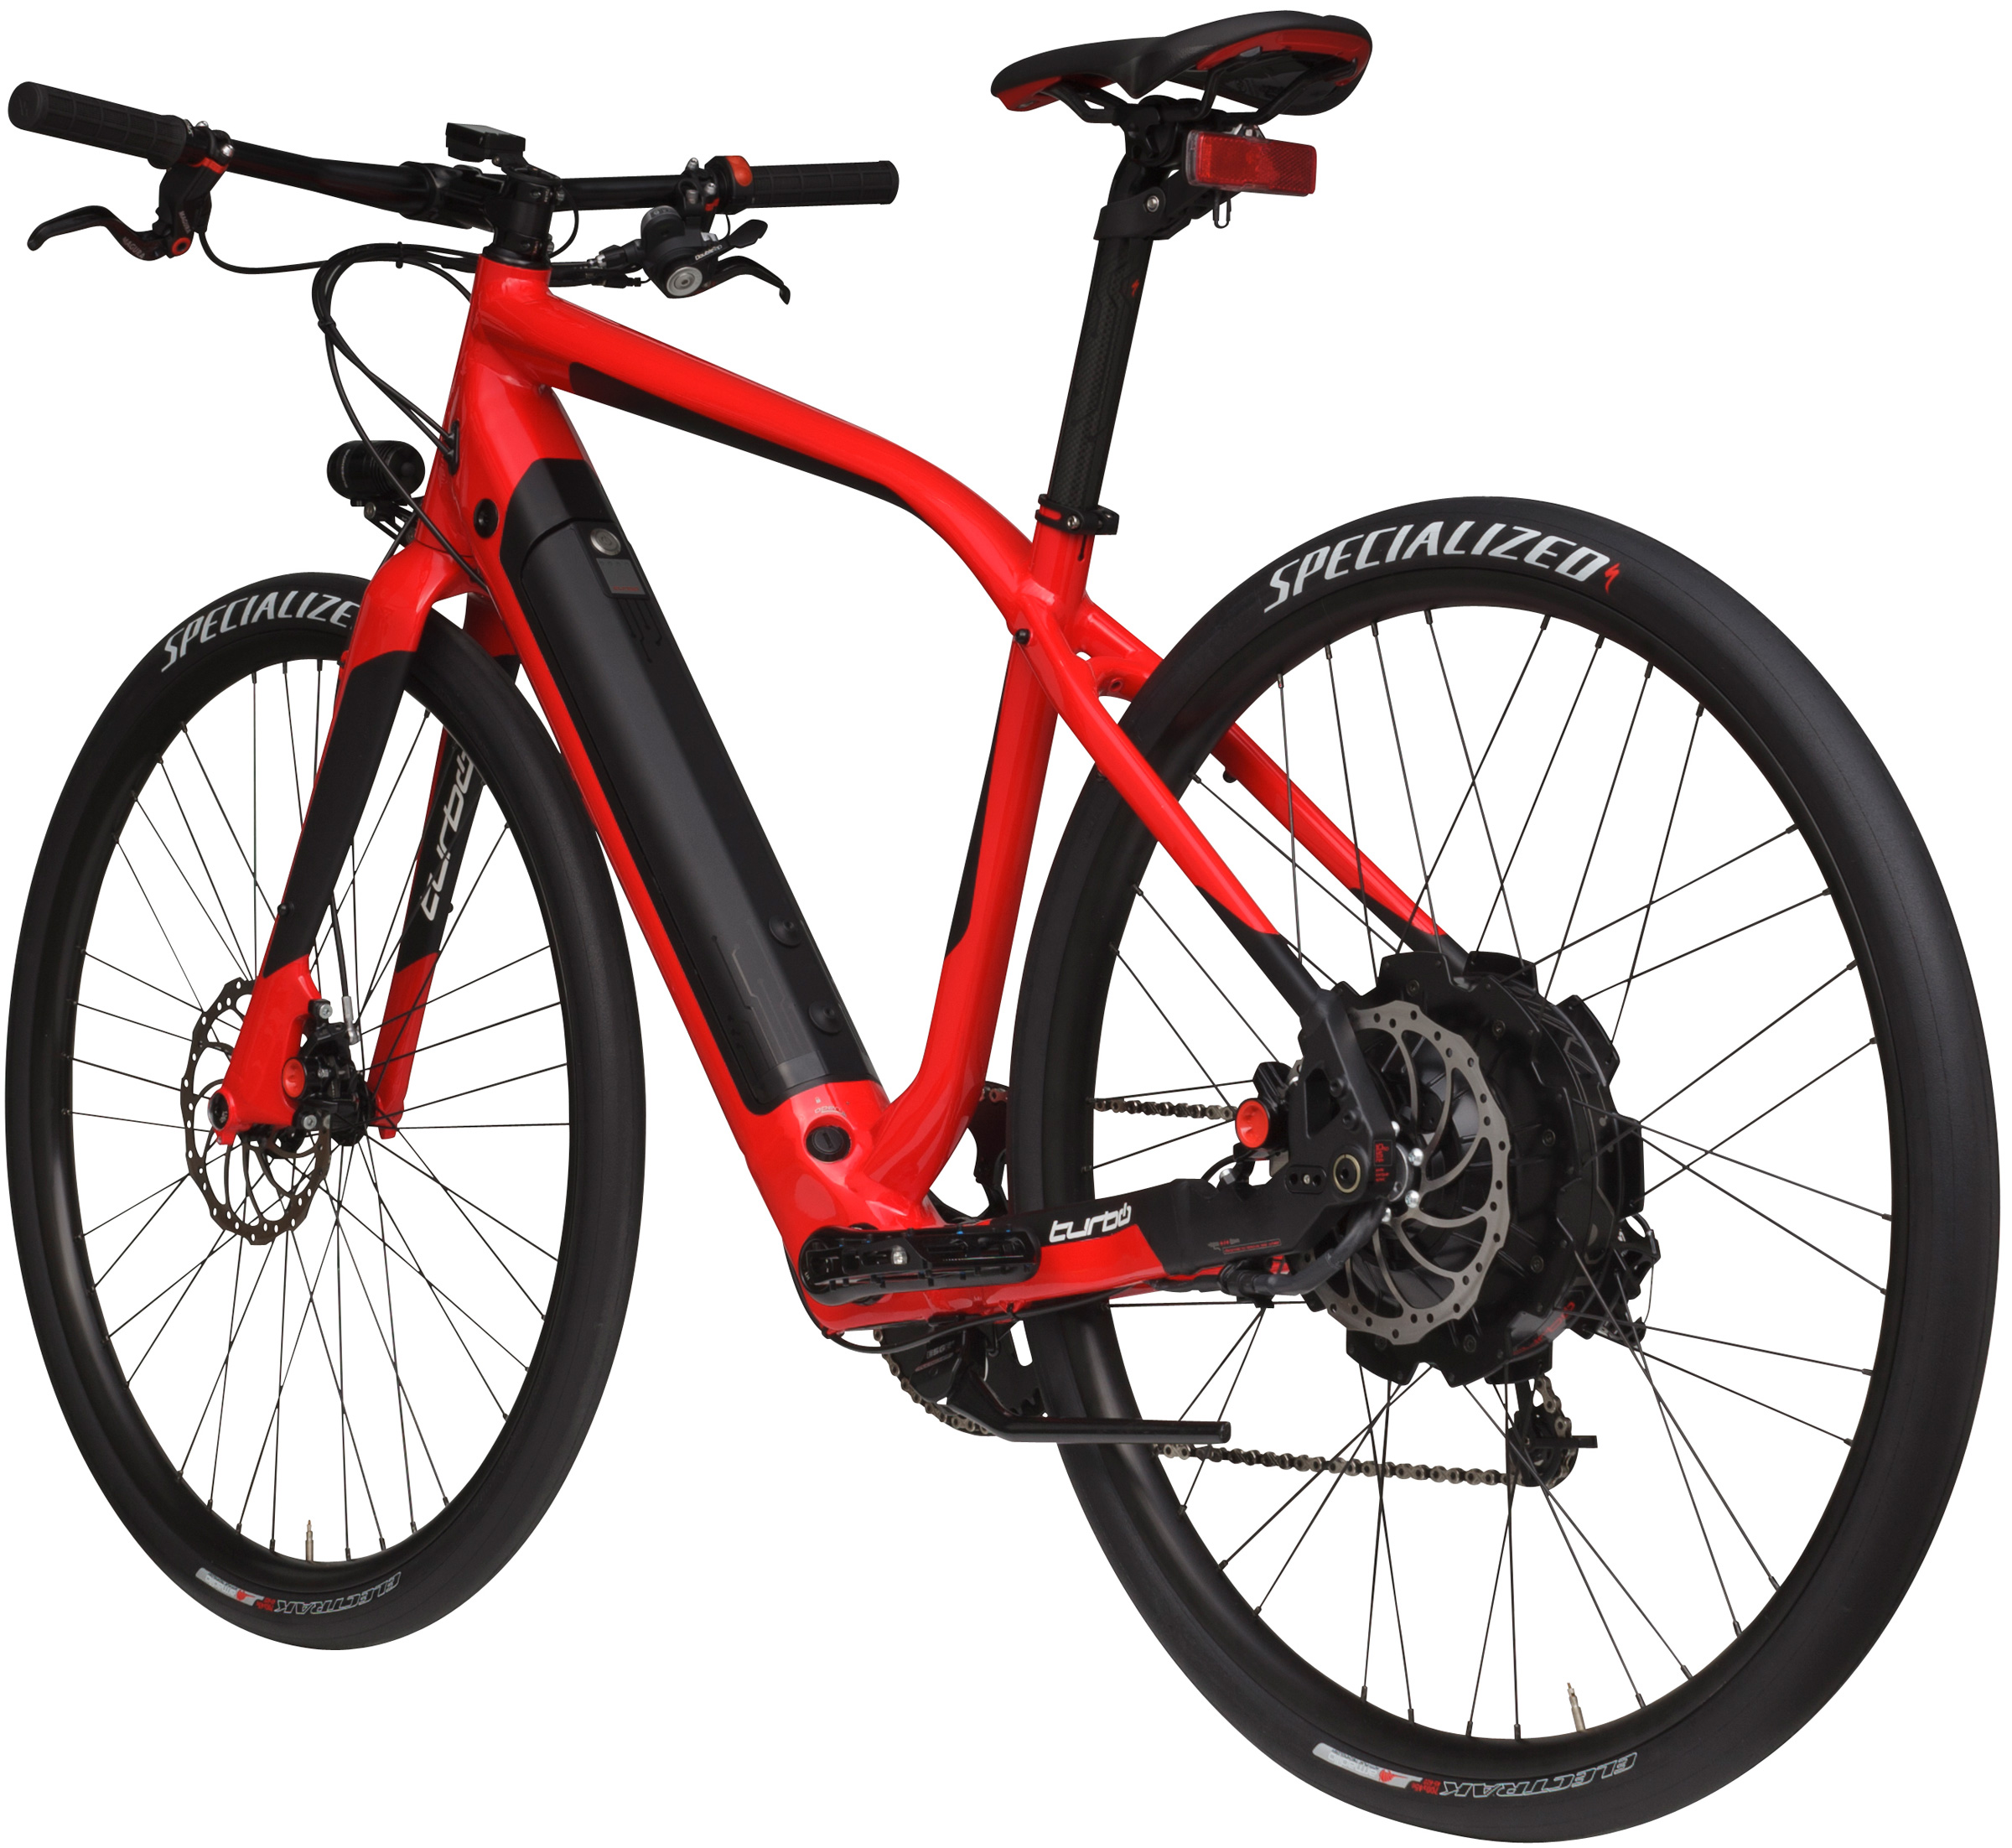 Specialized Turbo S - Bill's Bike & Run | Bicycle and